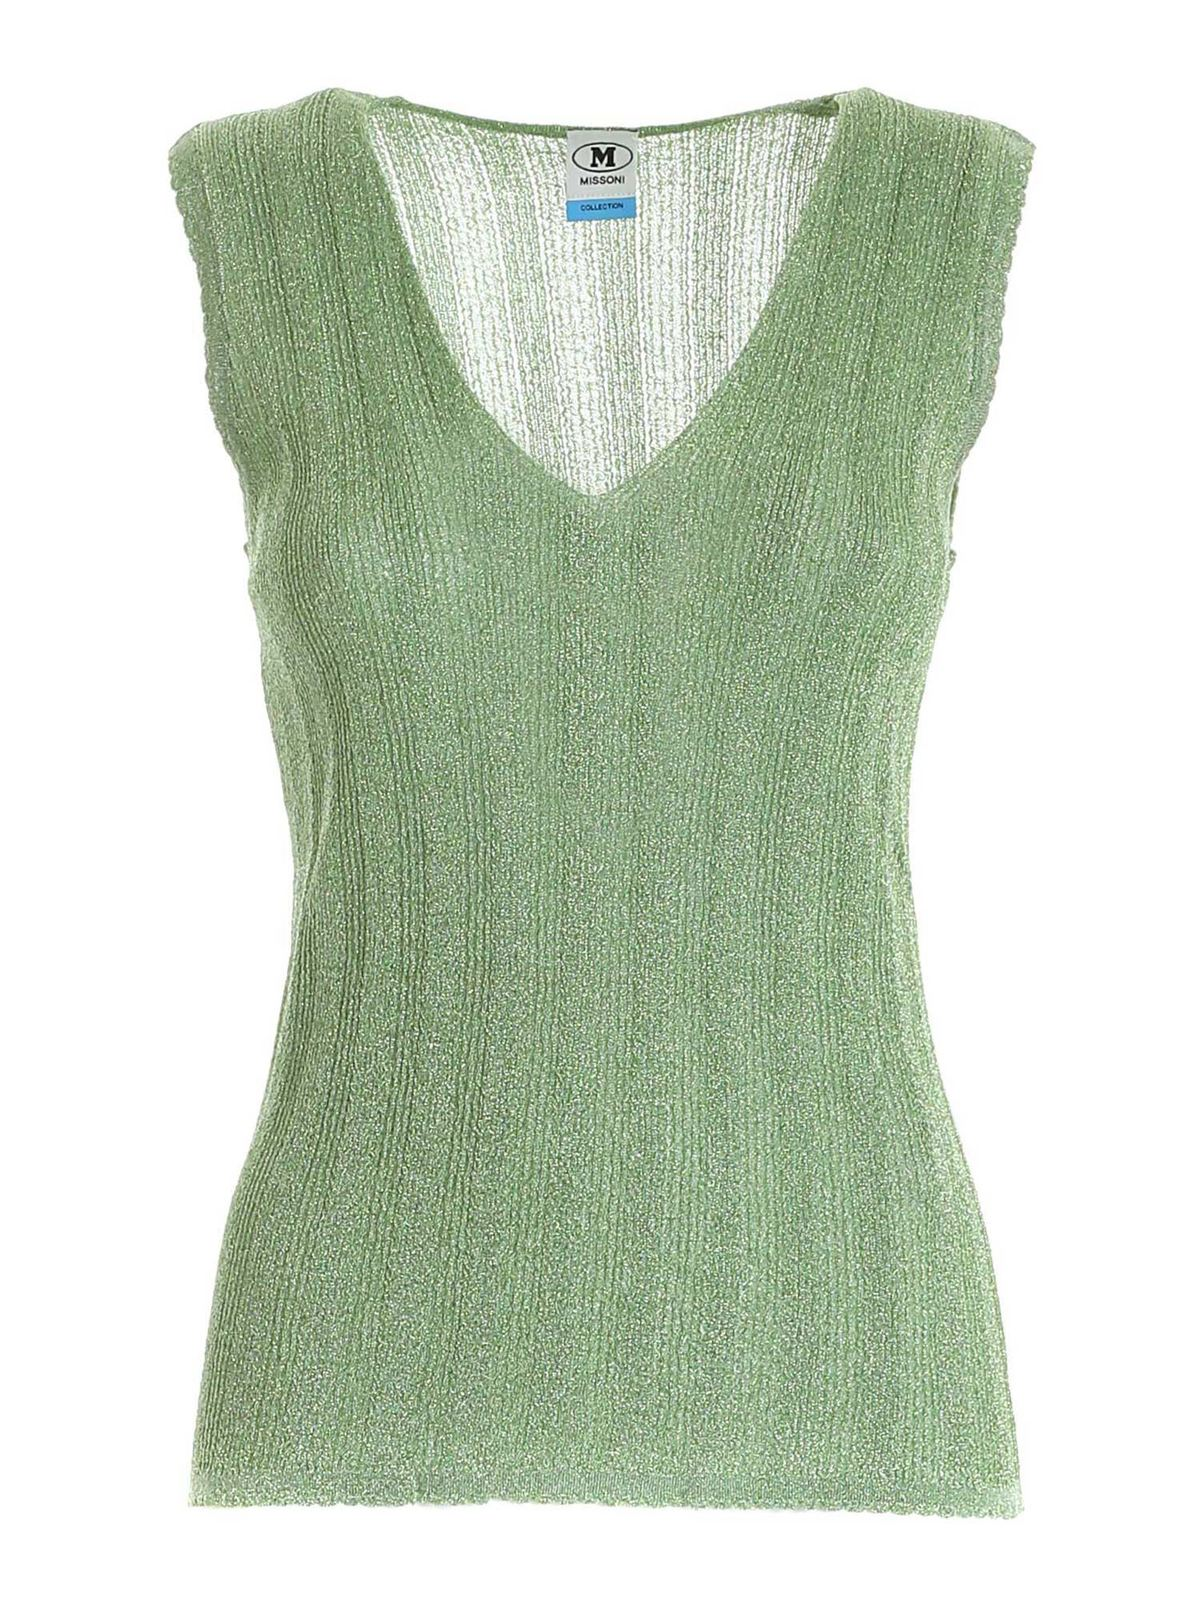 M Missoni LAME KNITTED TOP IN GREEN